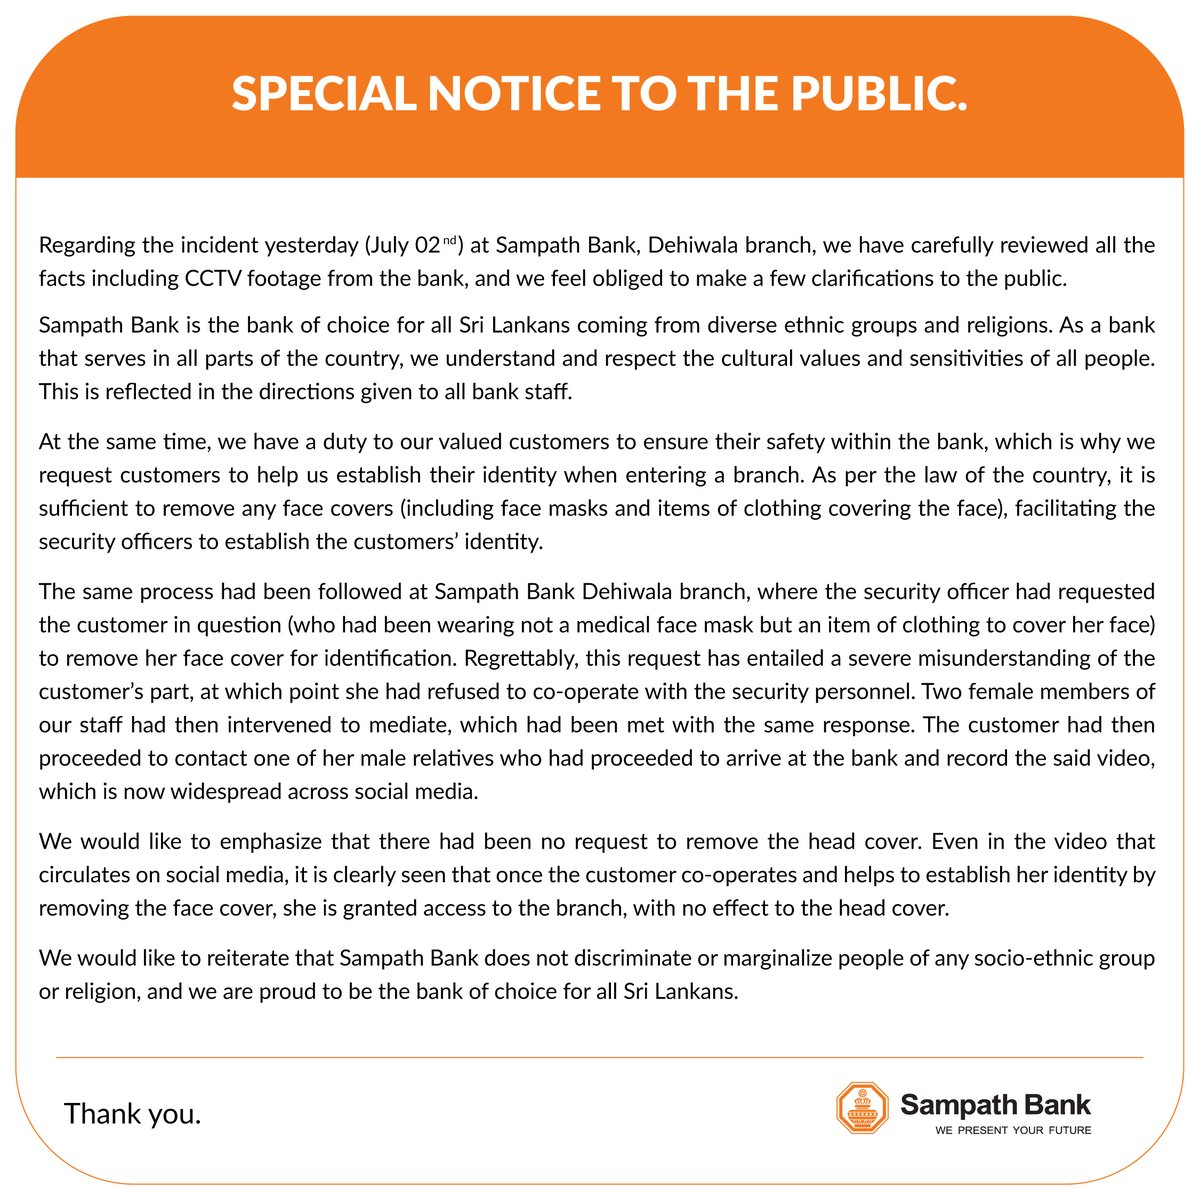 SPECIAL NOTICE TO THE PUBLIC #SampathBank #SampathPLC https://t.co/Sq3o2lAGCo